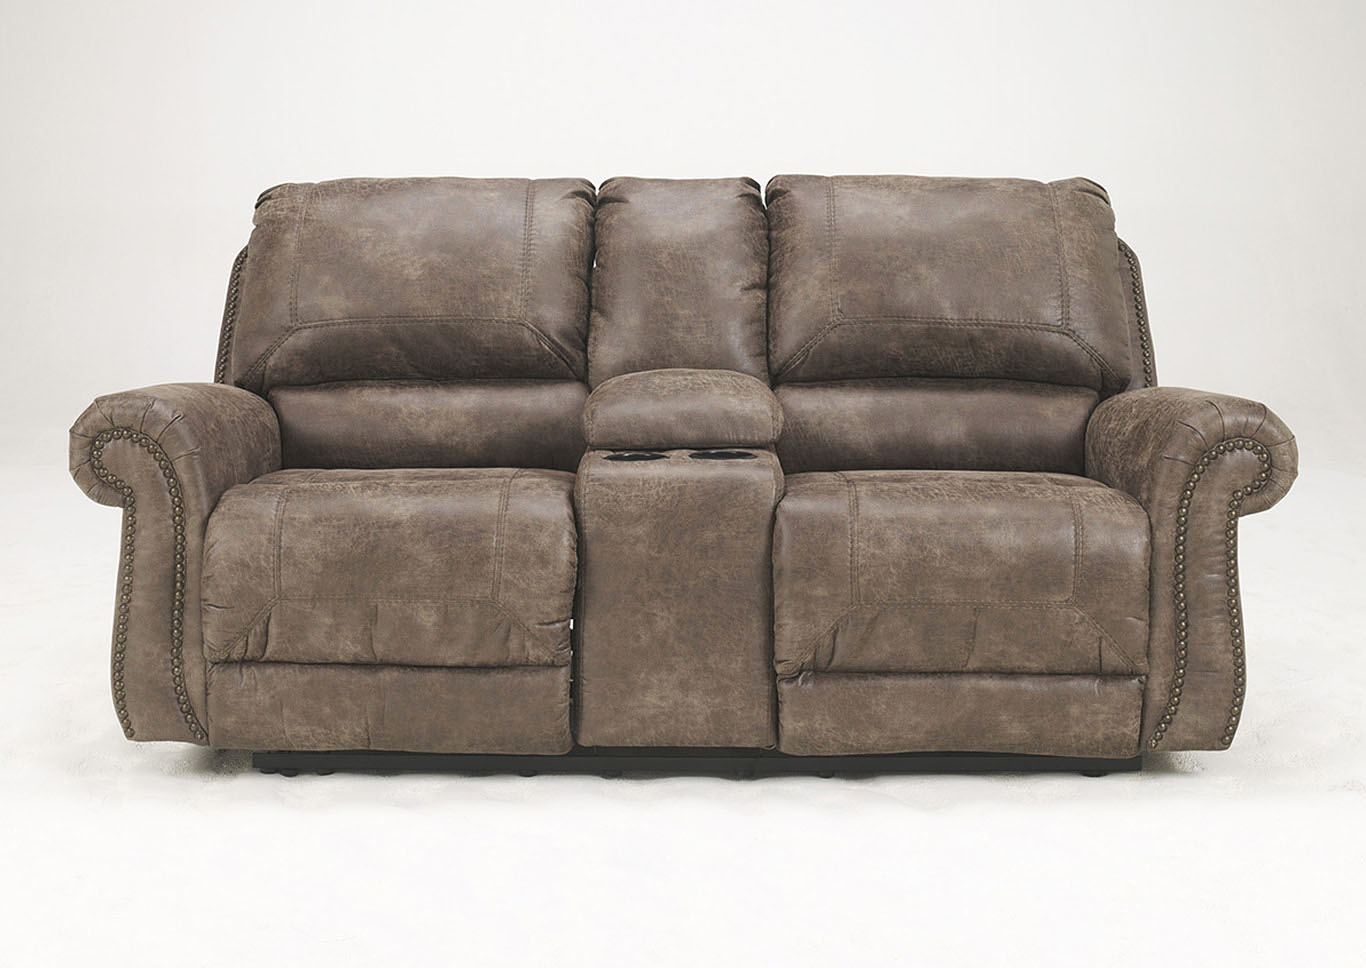 Oberson Gunsmoke Double Reclining Loveseat,Signature Design By Ashley